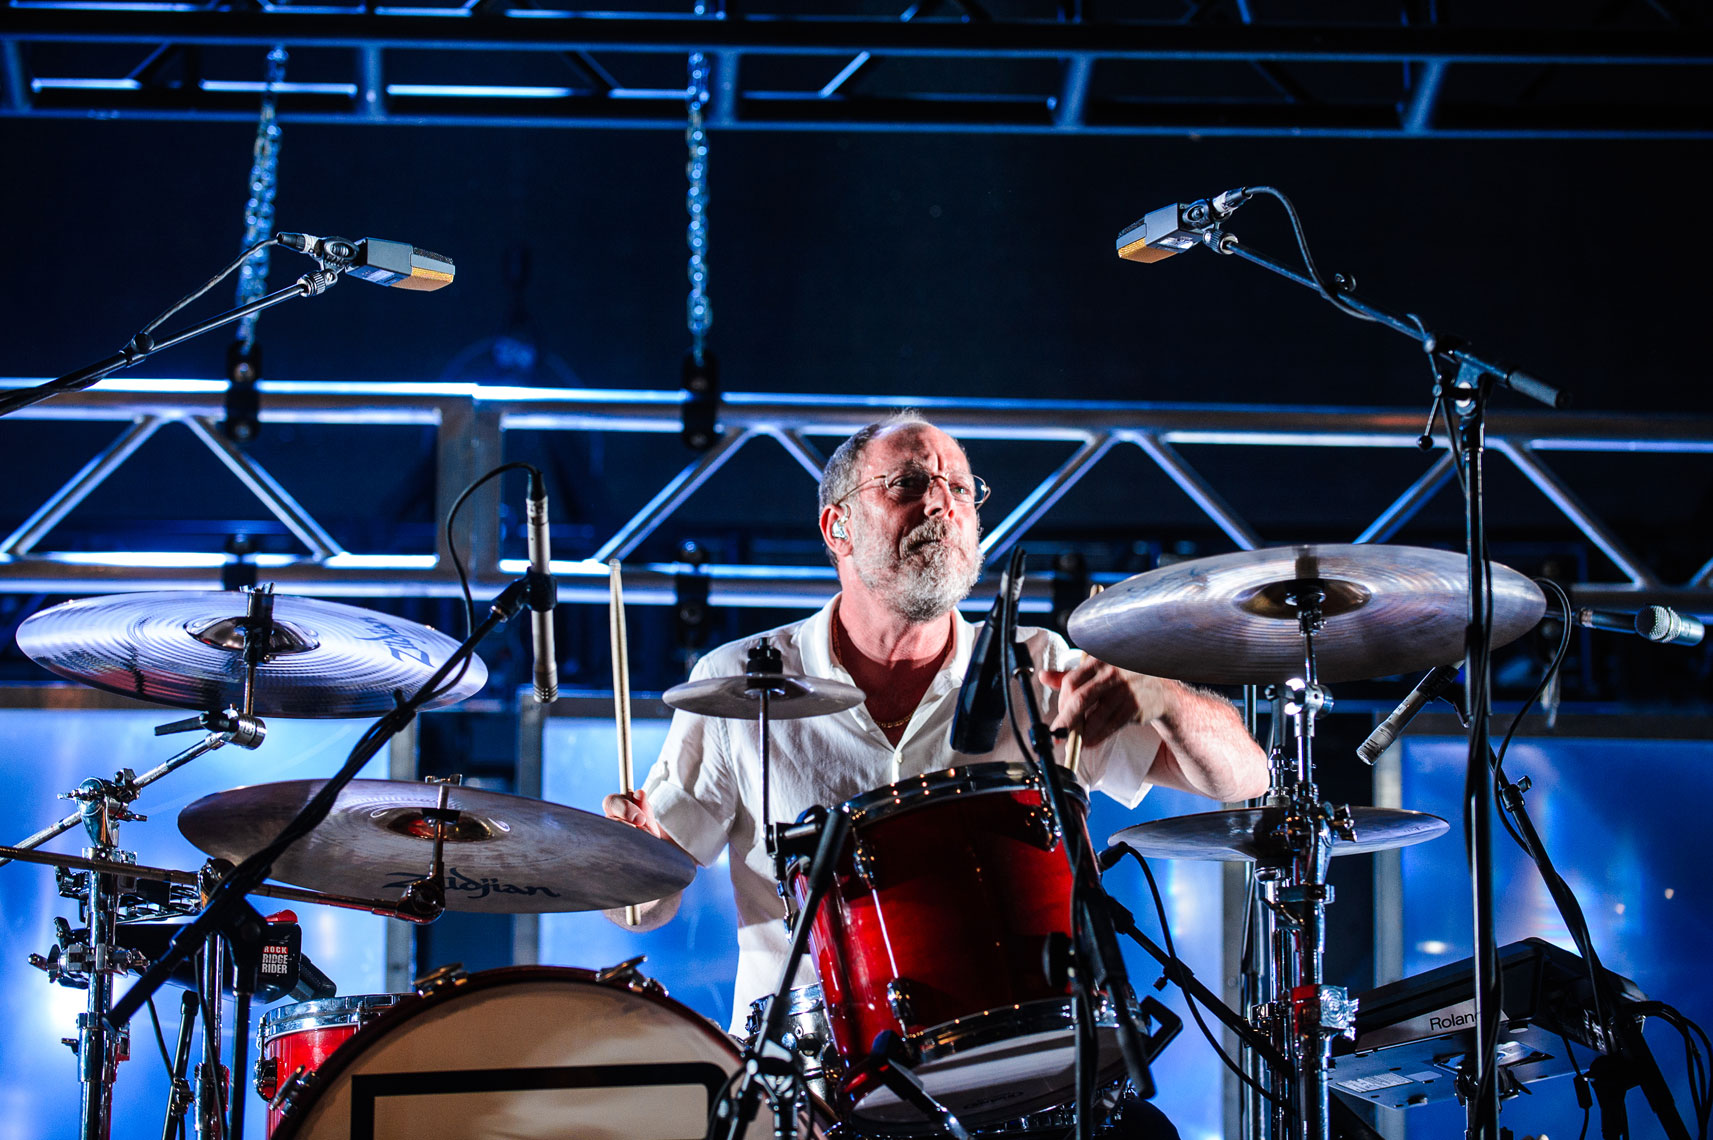 The-Pixies-perform-at-Coachella-2014-2